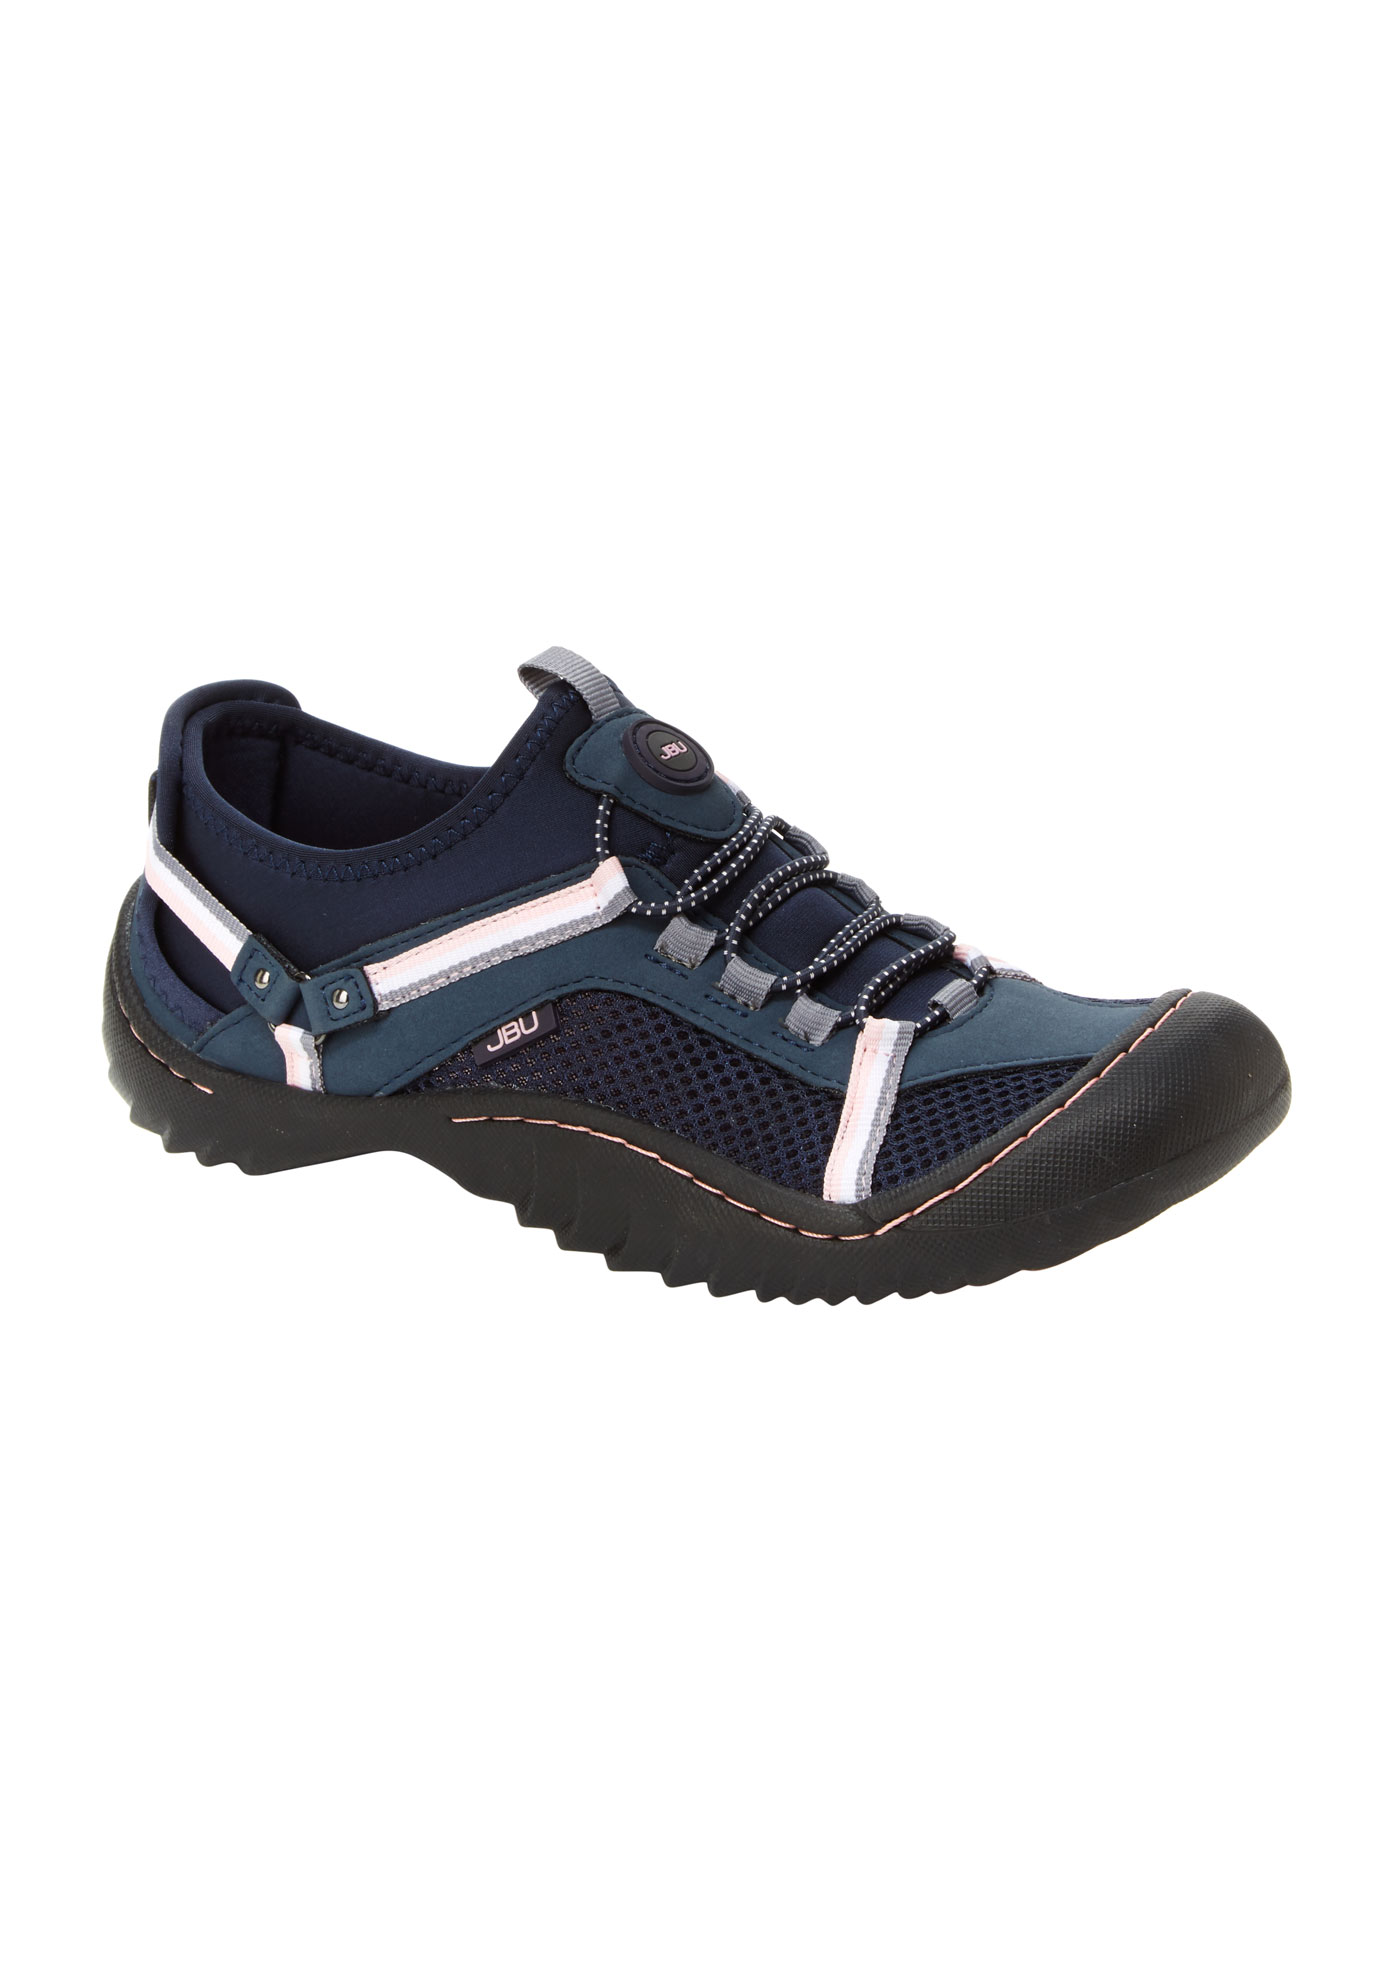 Tahoe Max Sneakers by JBU®,